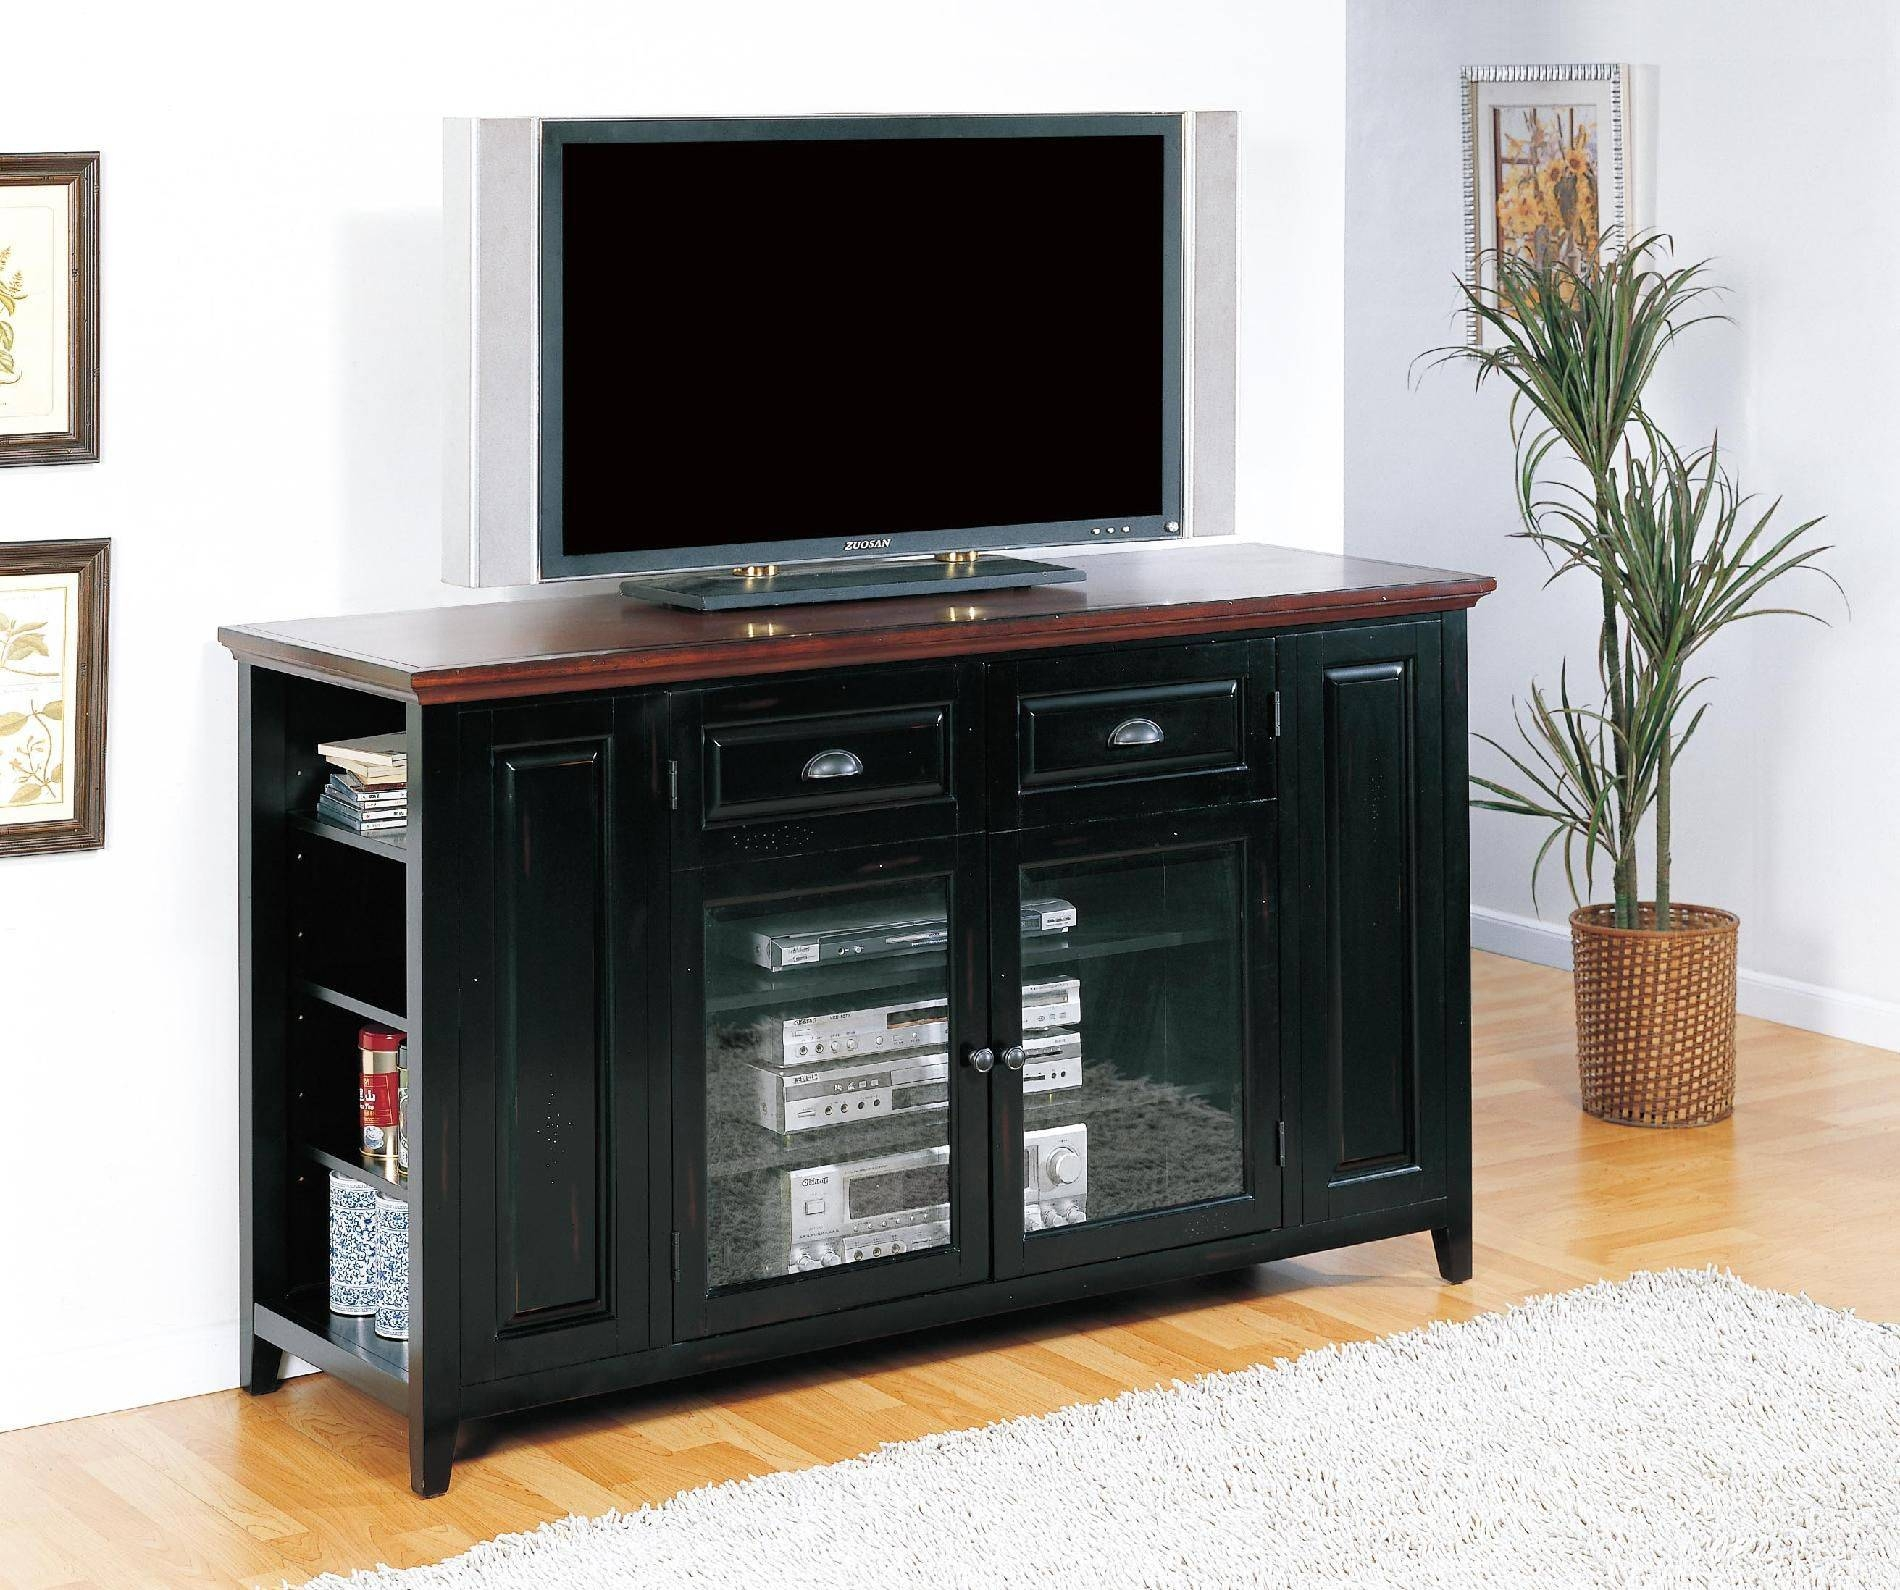 Retro Black Oak Wood Tv Stand With Glass Doors Of Tall Tv Stands within Tall Black Tv Cabinets (Image 9 of 15)